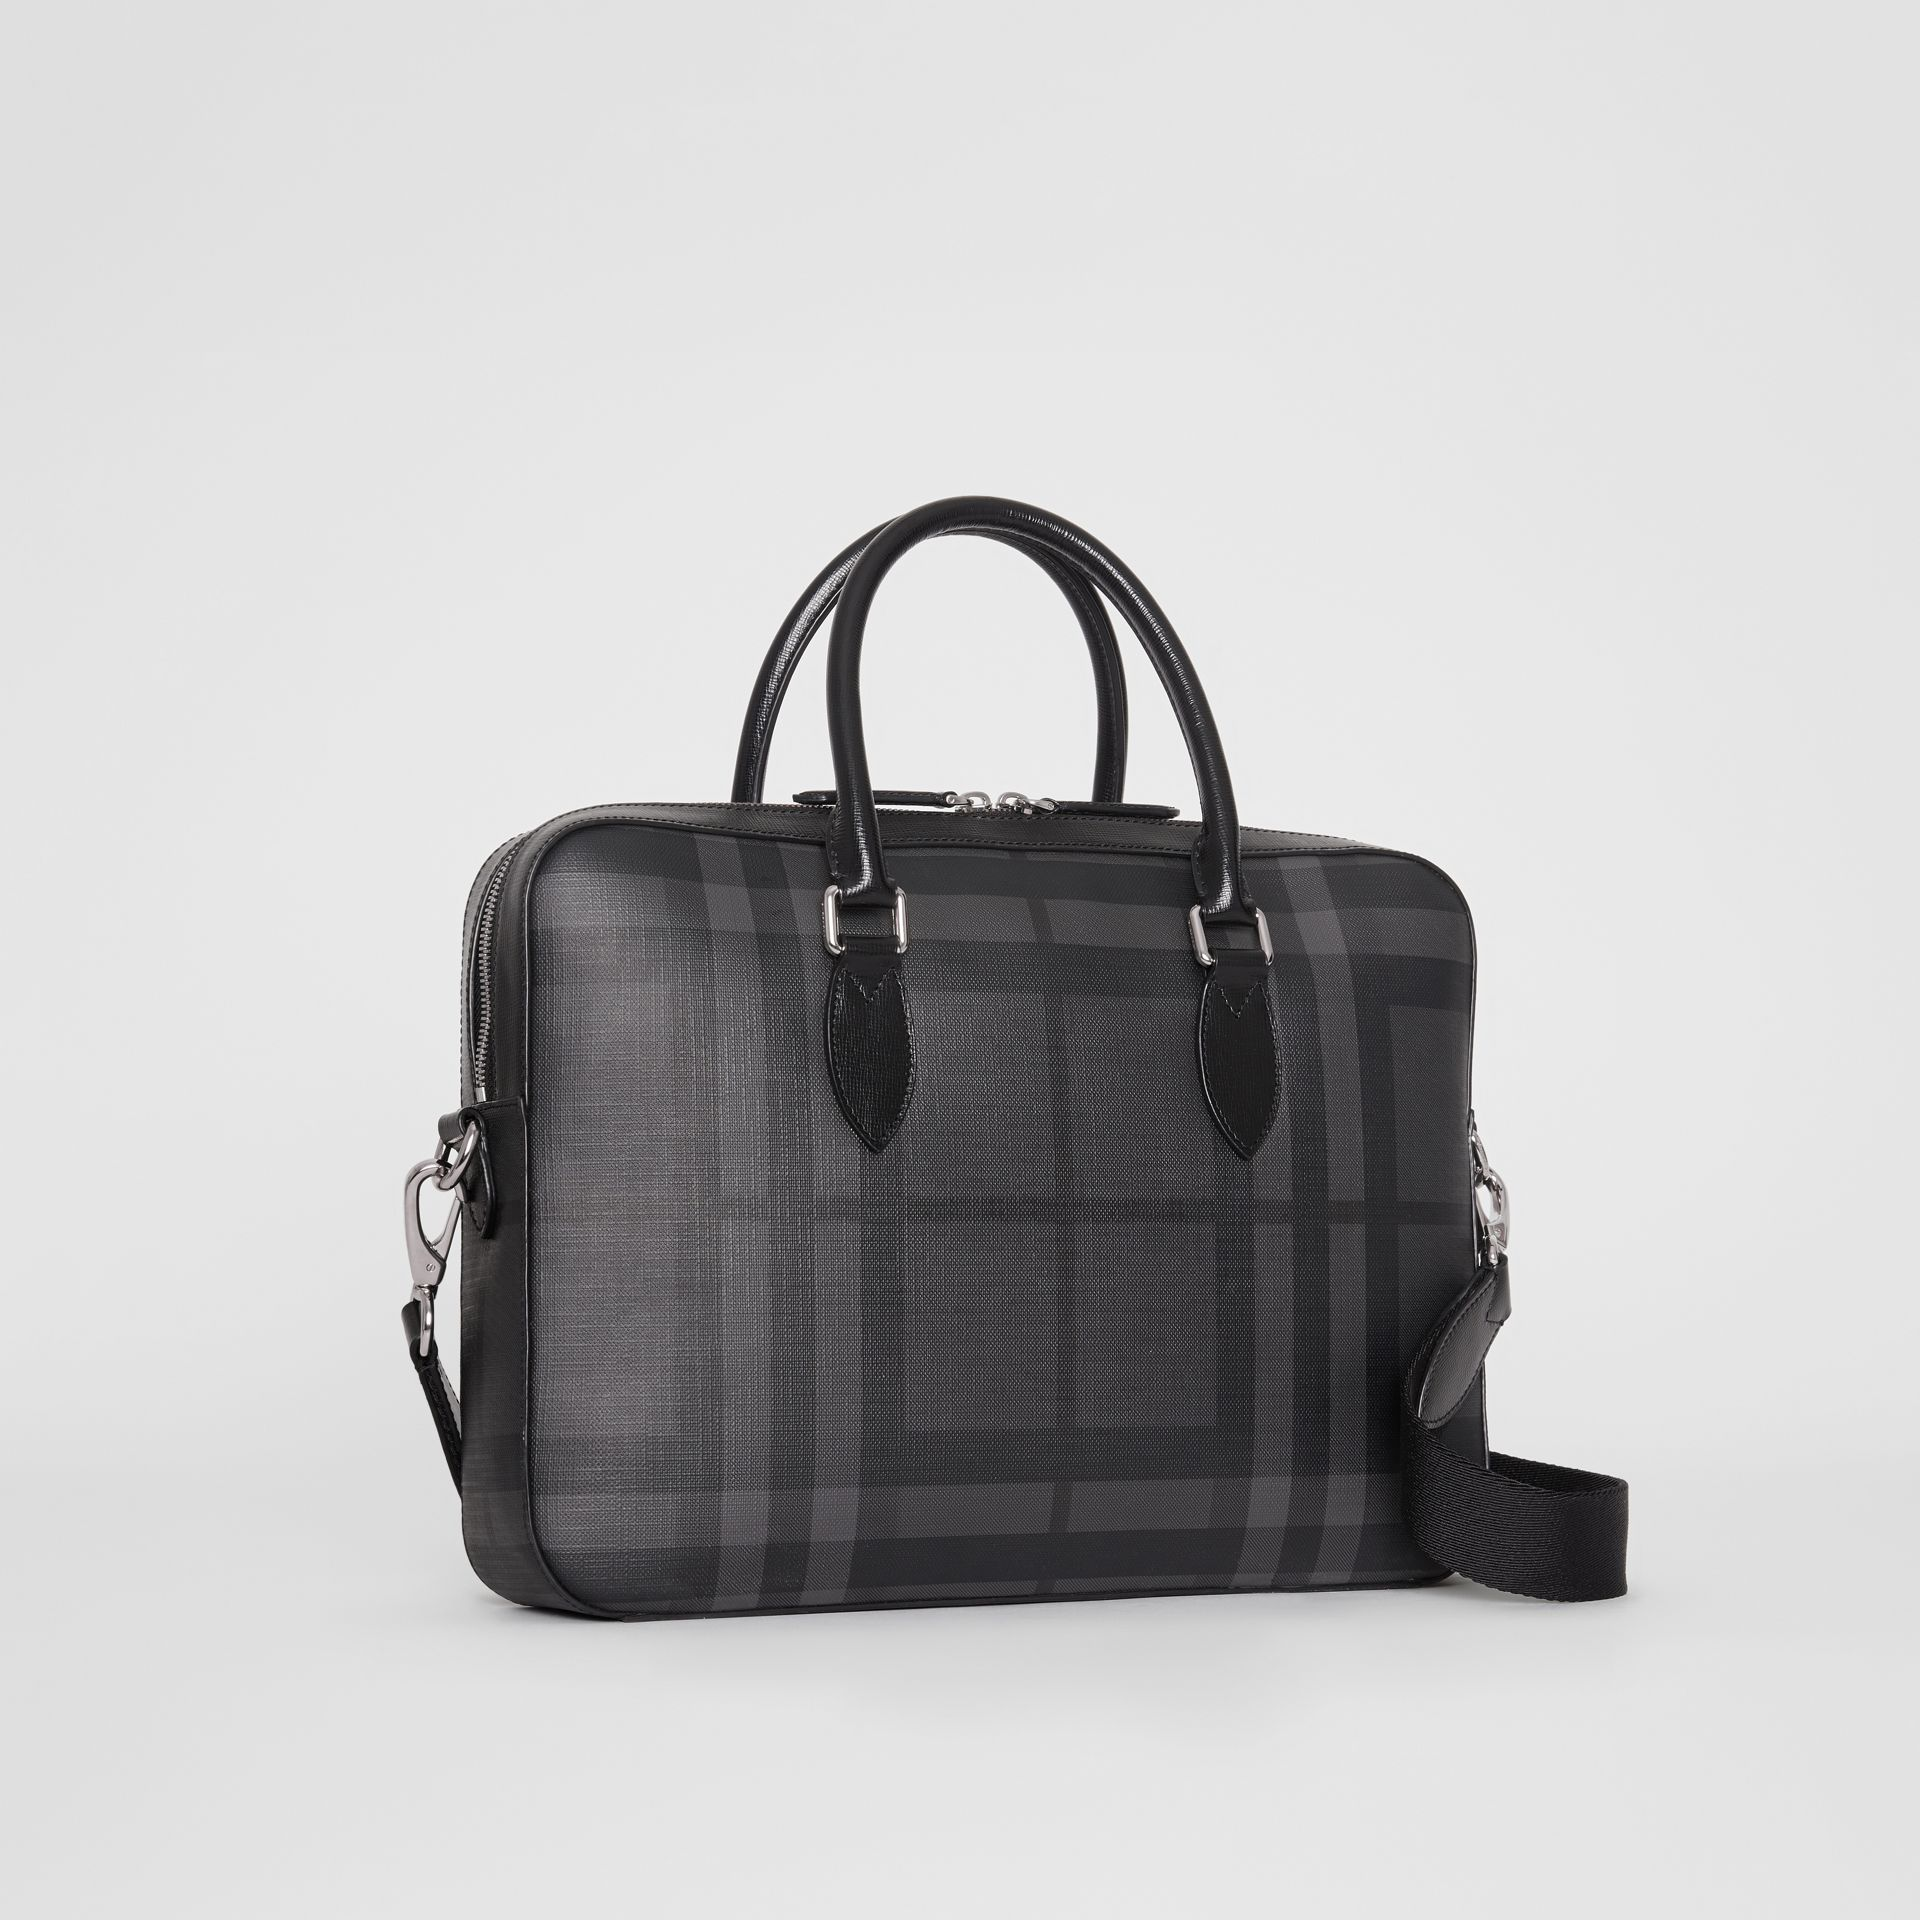 Sac The Barrow fin avec motif London check (Anthracite/noir) - Homme | Burberry - photo de la galerie 6